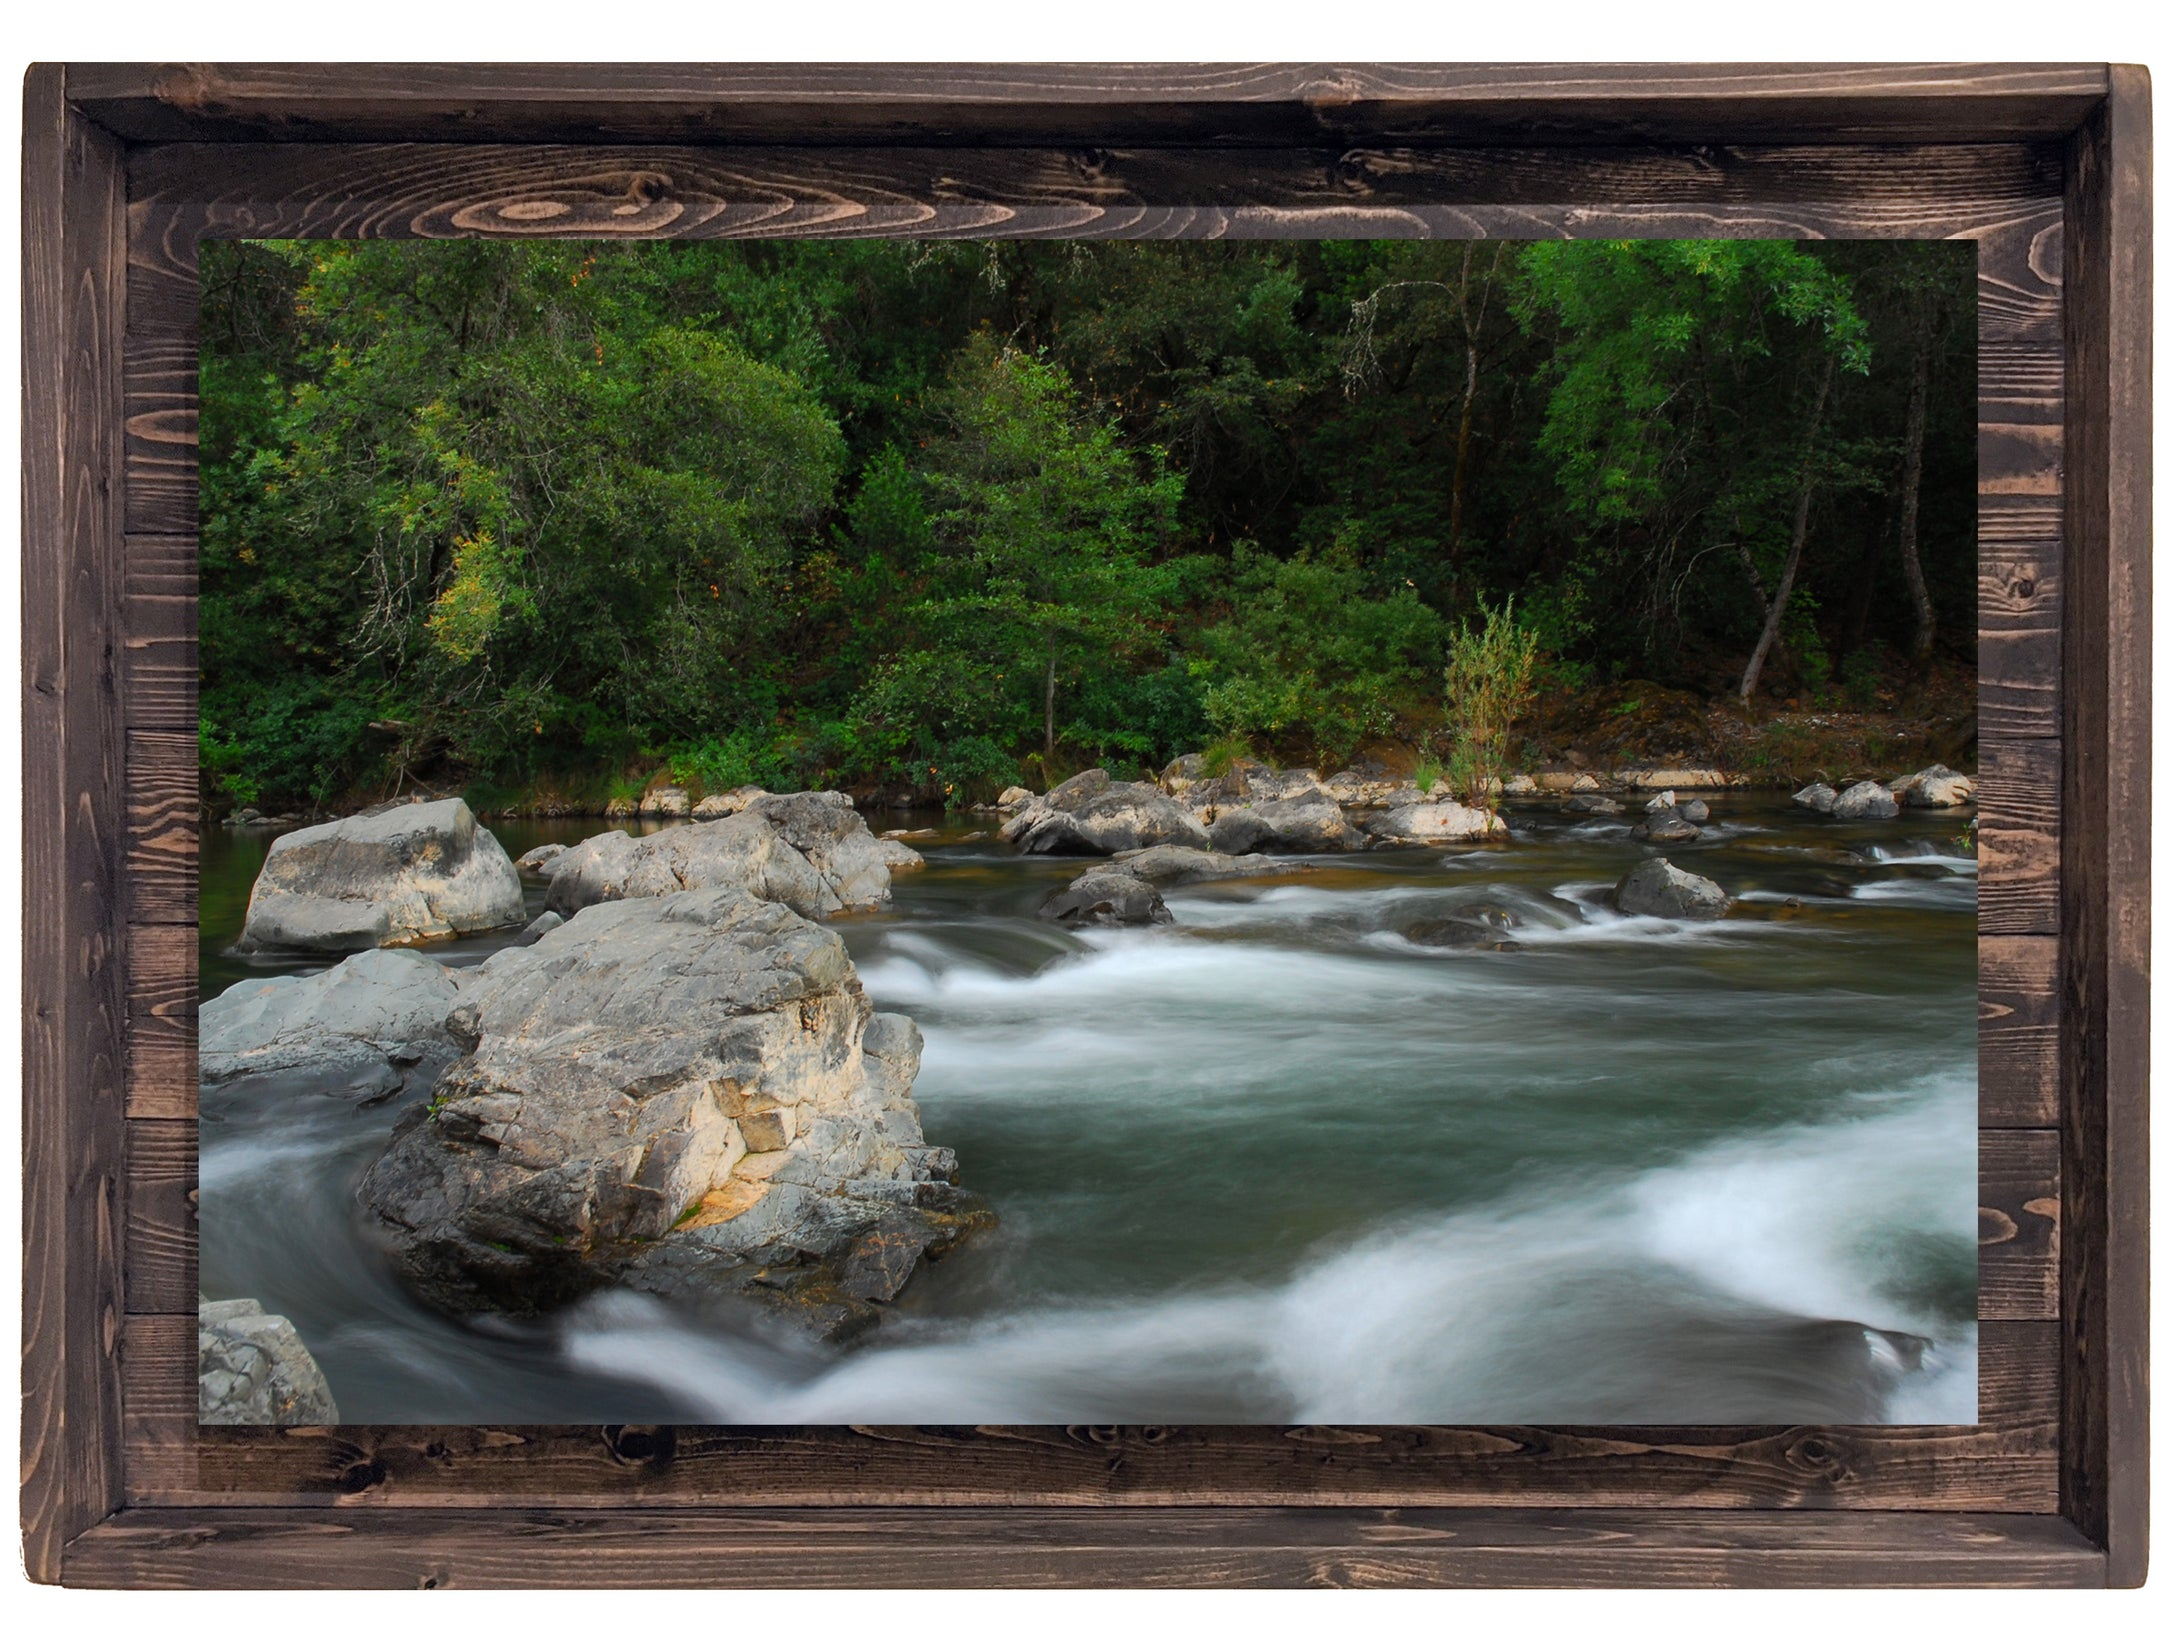 Serenity Amidst the Chaos (Modern Rustic Floating Art Print with Hidden Storage for Jewelry)